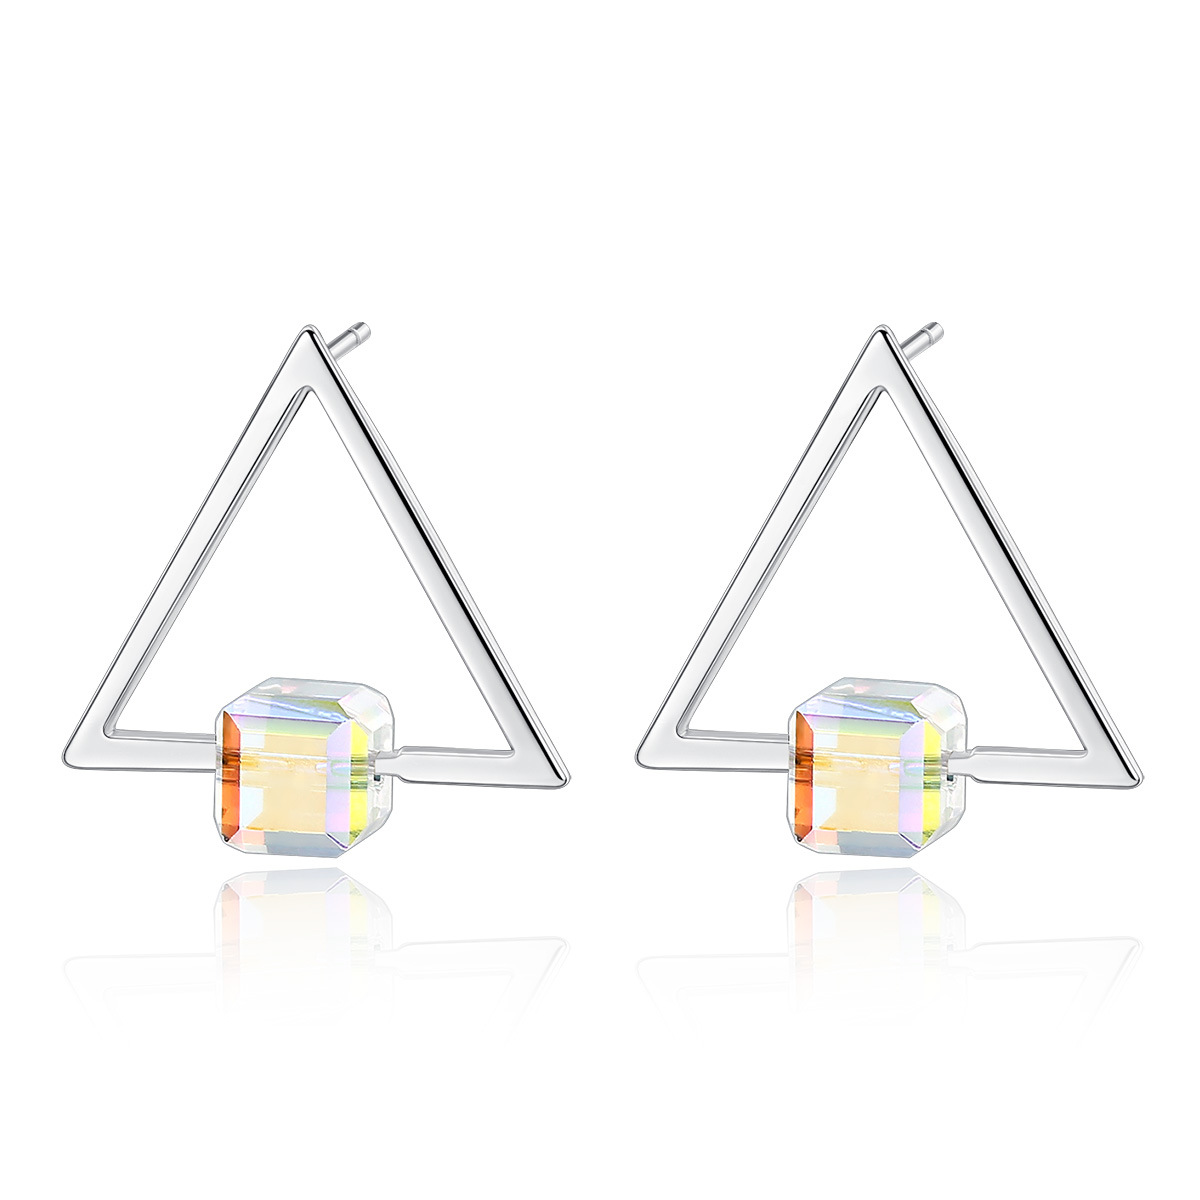 PAG & MAG S925 pure silver ear nail female Korean crystal simple Triangle Earrings unique personality design(China)